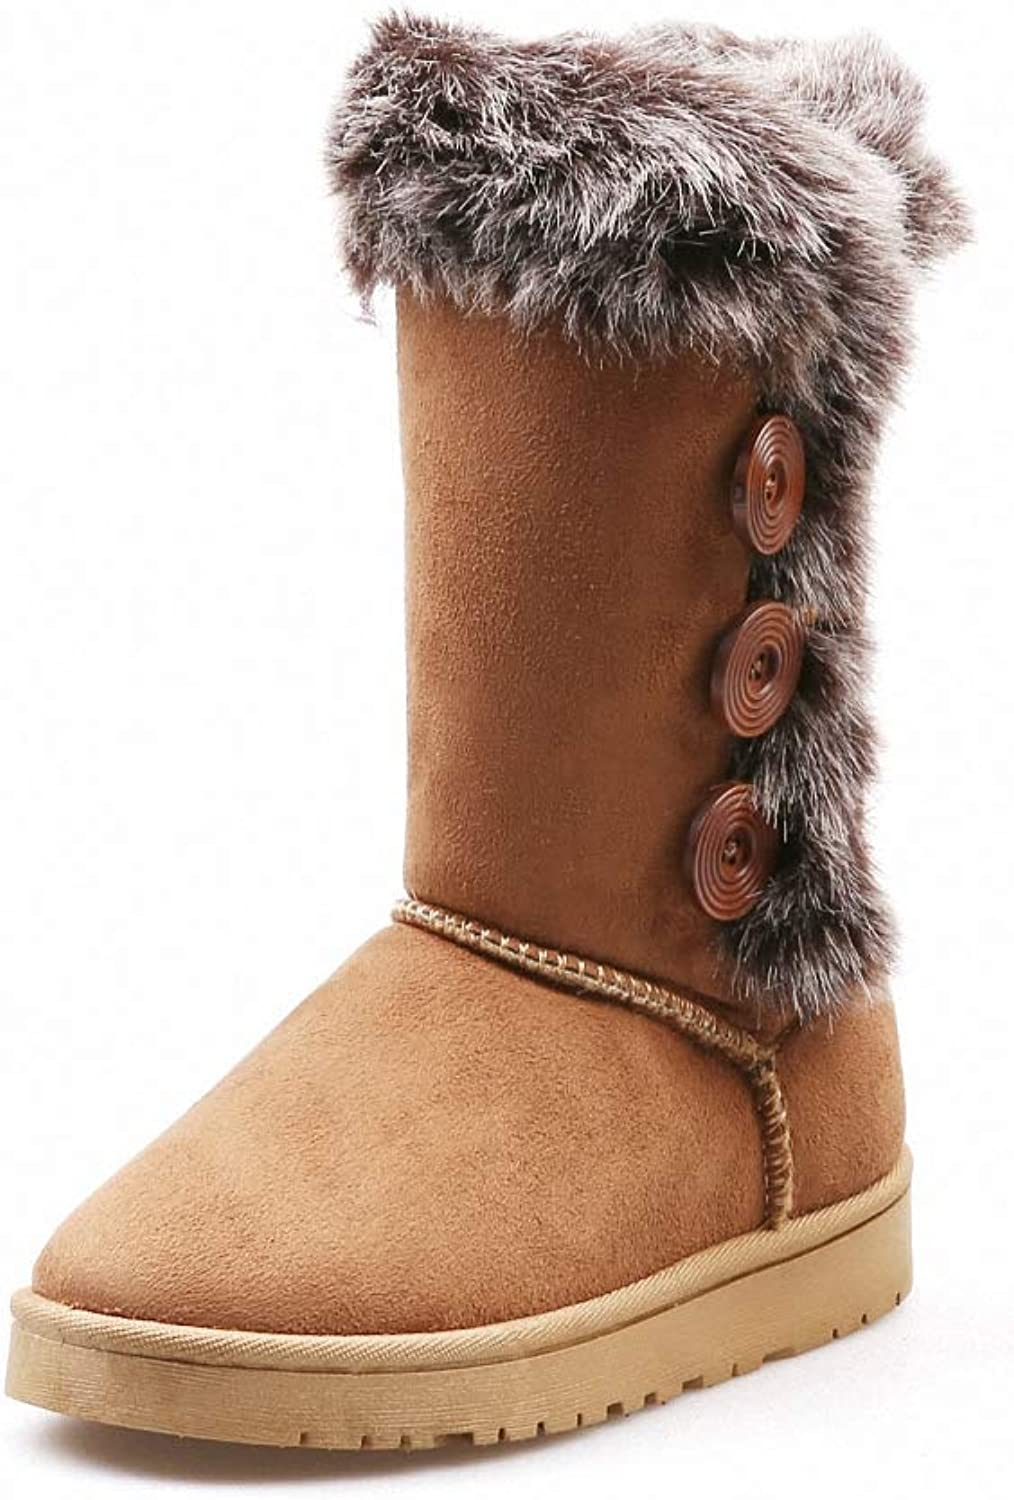 Kyle Walsh Pa Women Snow Boots Thick Faux Fur Winter Warm Mid-Calf Female Casual Footwear Comfortable Flats shoes